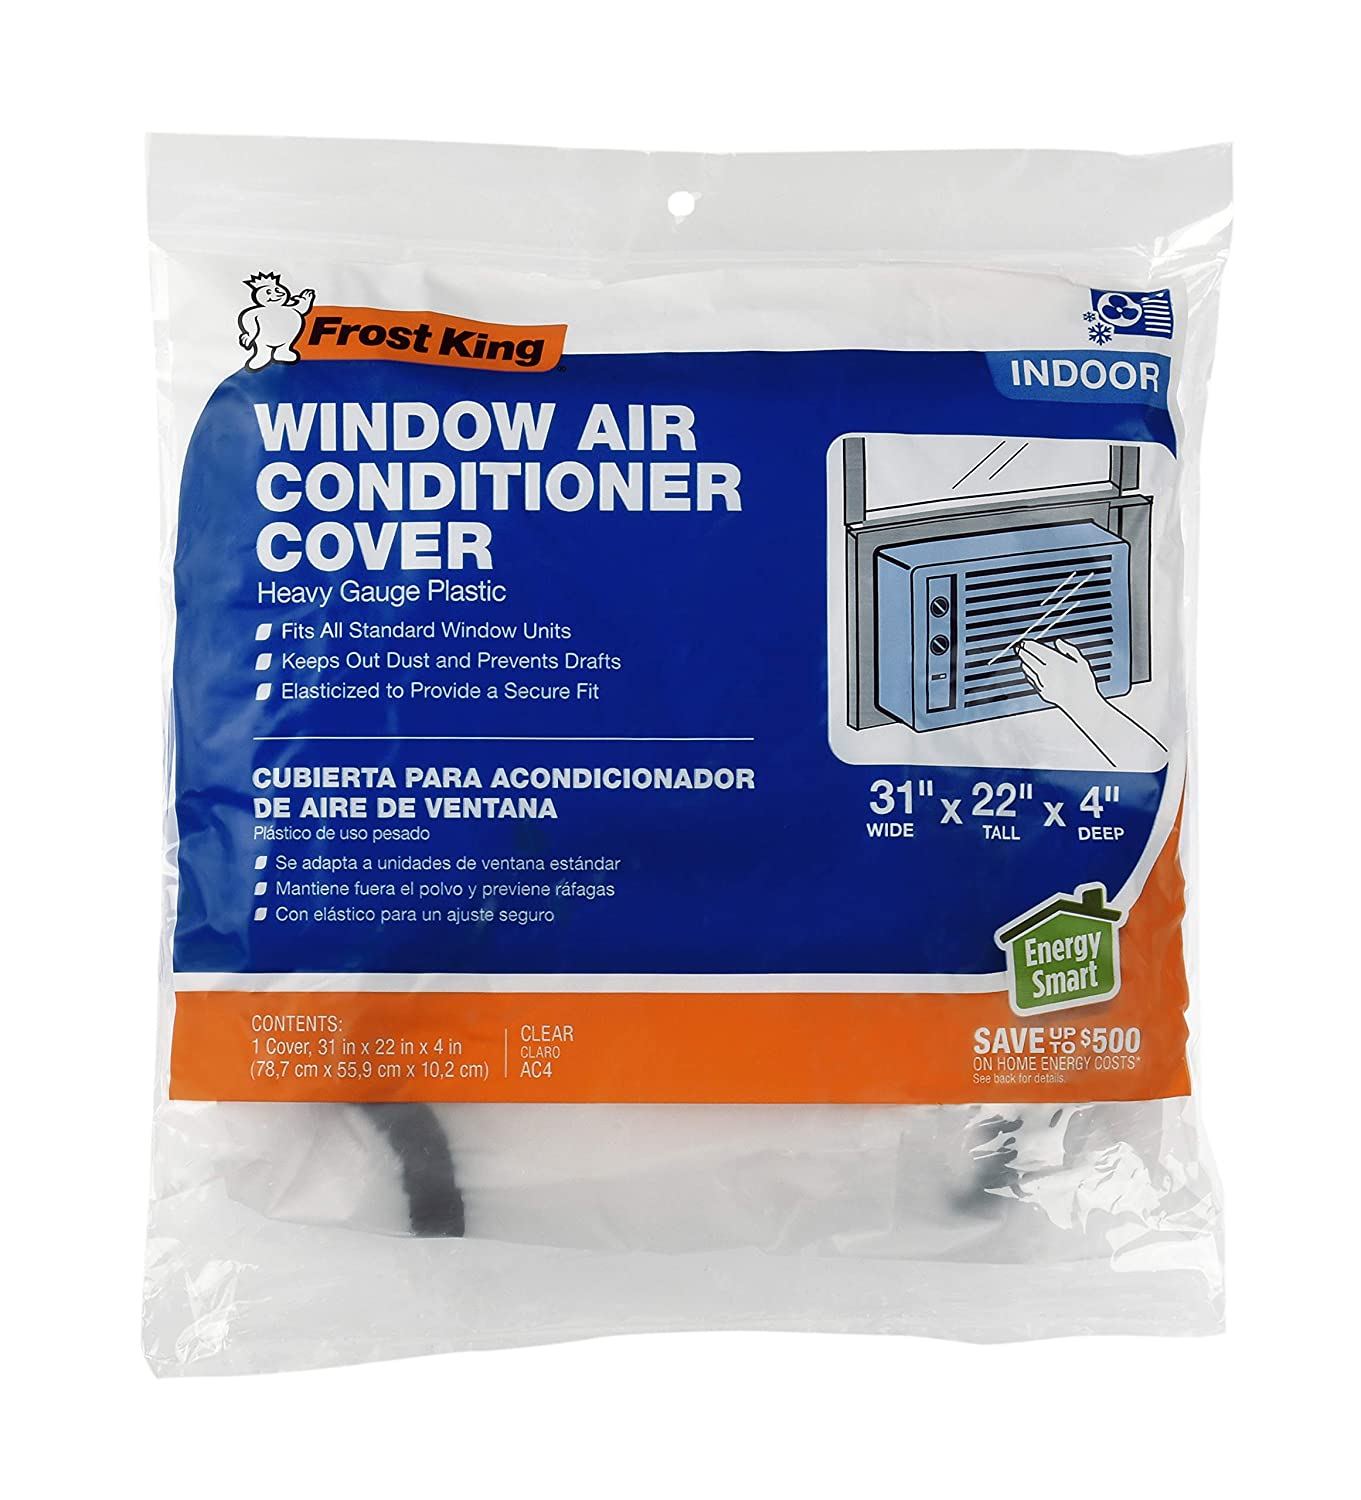 B001AV51LQ Frost King AC4 Inside Window Air Conditioner Cover, 3mil 81e5ZD2BshLL